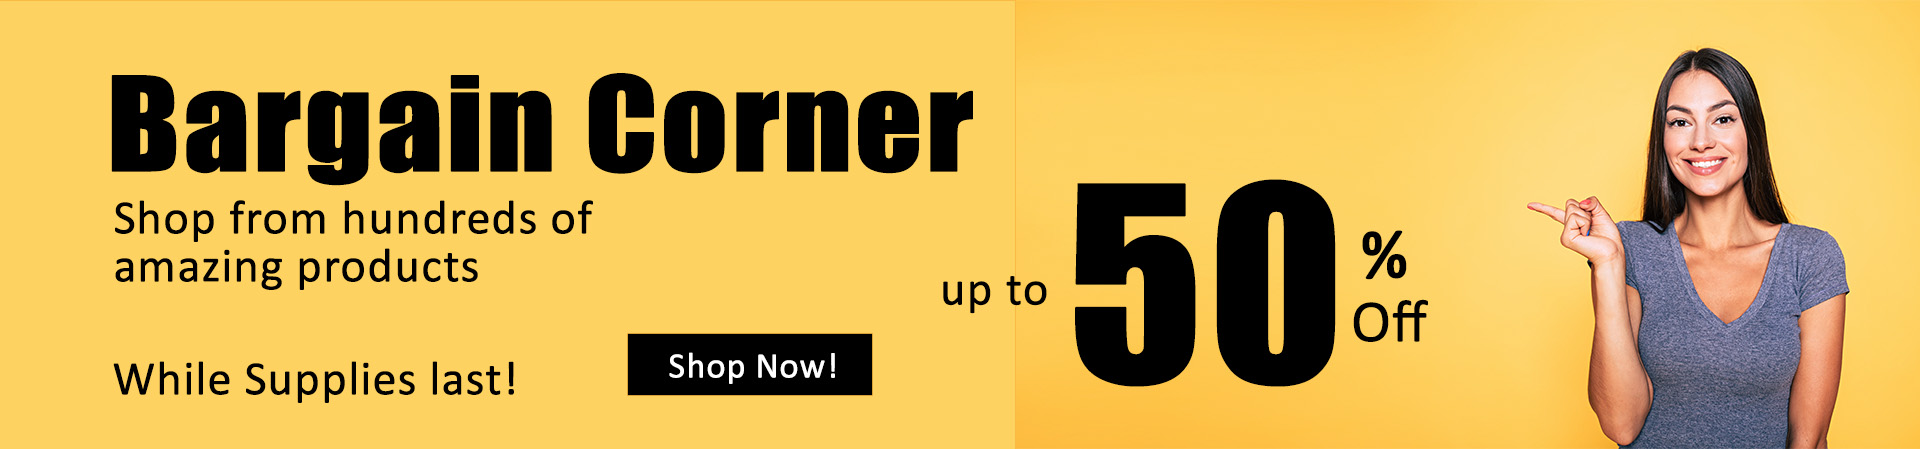 E&S Pets Bargain Corner - Up to 50% Off